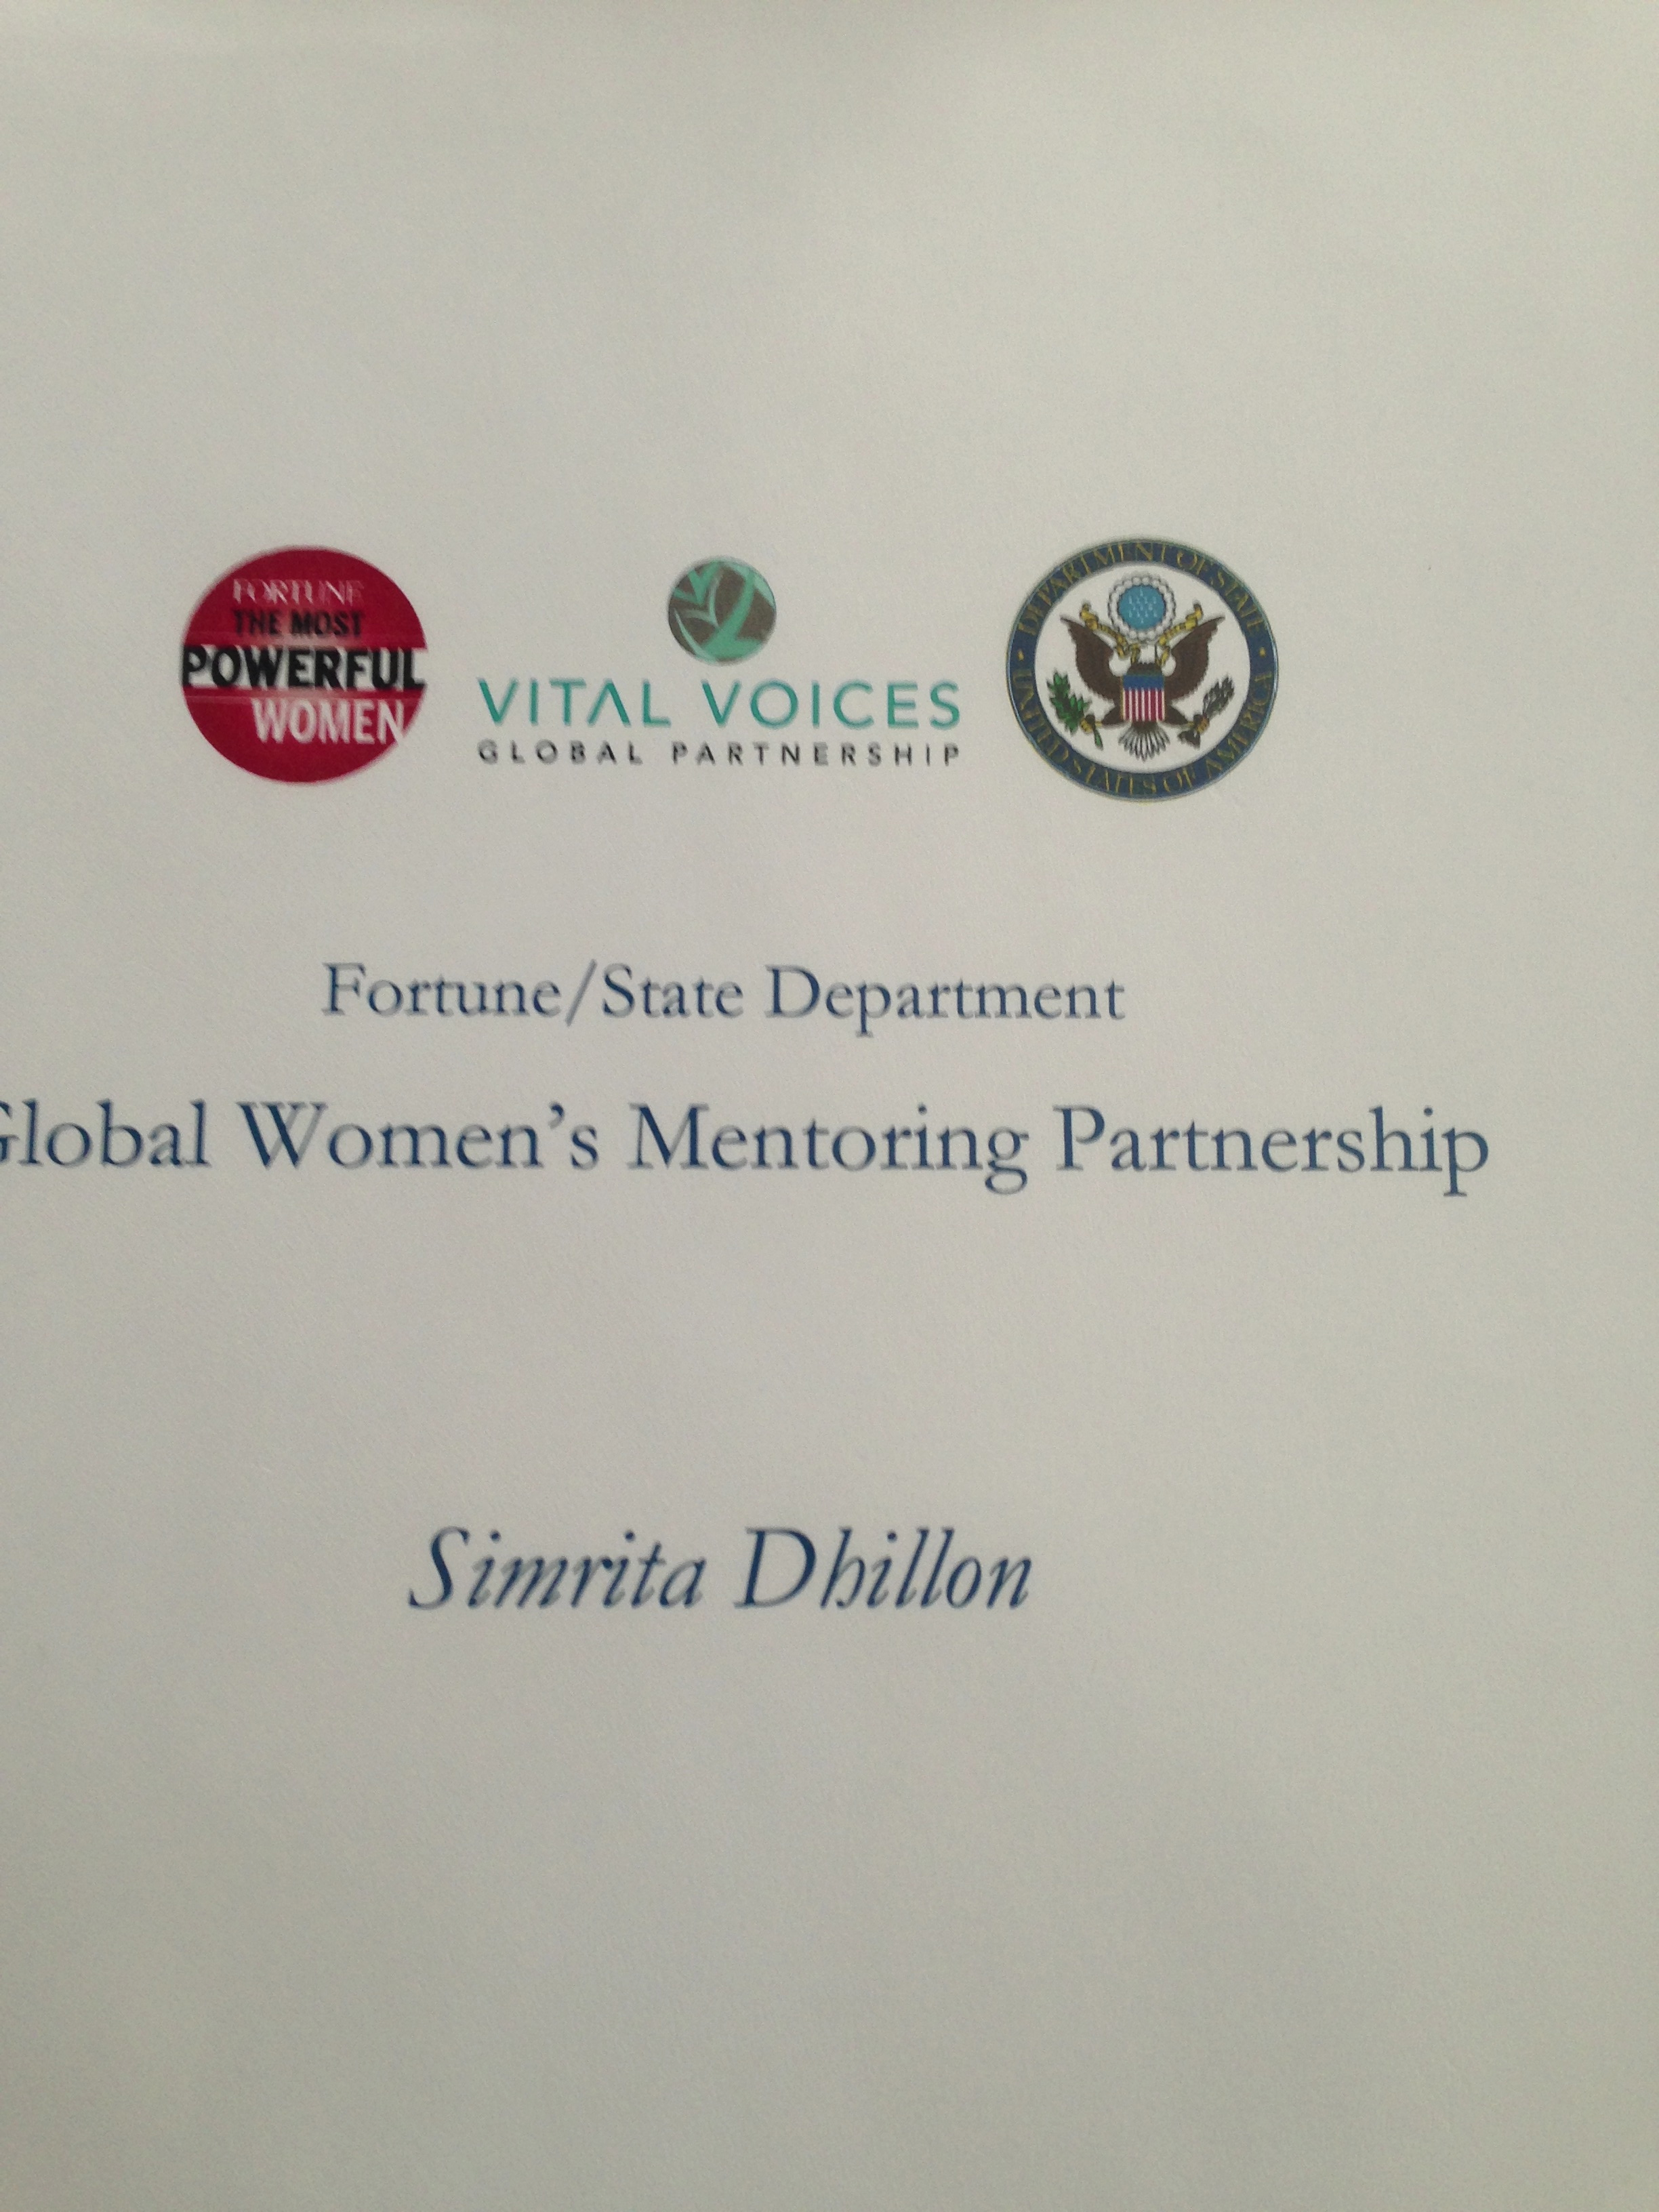 Thanks to Vital Voices Global Partnership. Fortune/ State Department - Global Women's Mentoring Partnership.